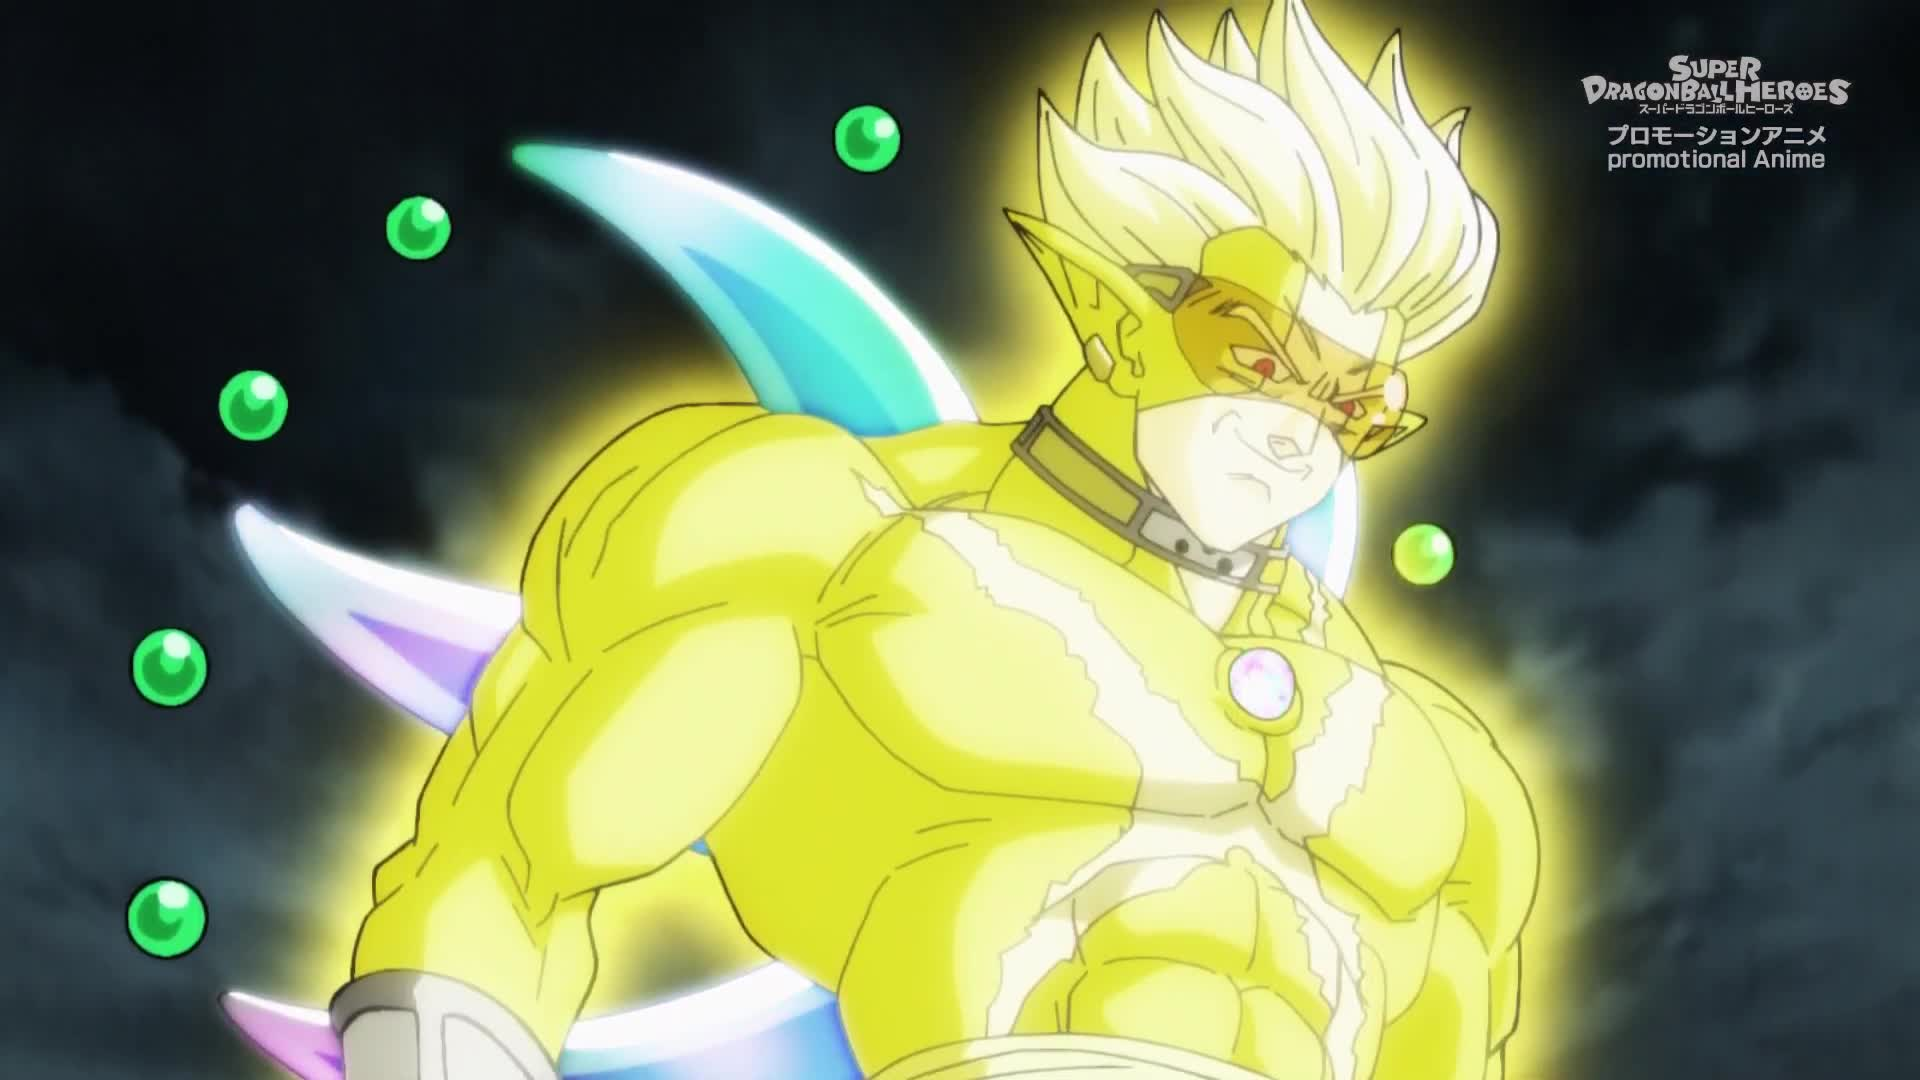 y2mate.com - super_dragon_ball_heroes_episode_17_gogeta_returns_iws-xMZVPRw_1080p_1876.jpg